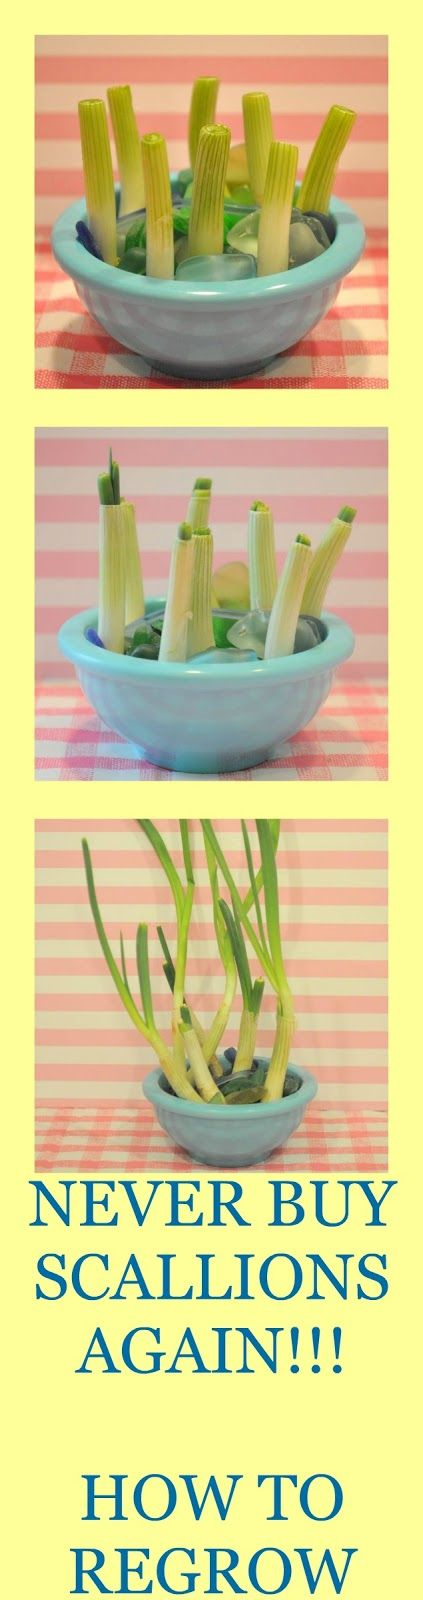 How To Grow Green Onions.  Never buy scallions again, simply cut and regrow!